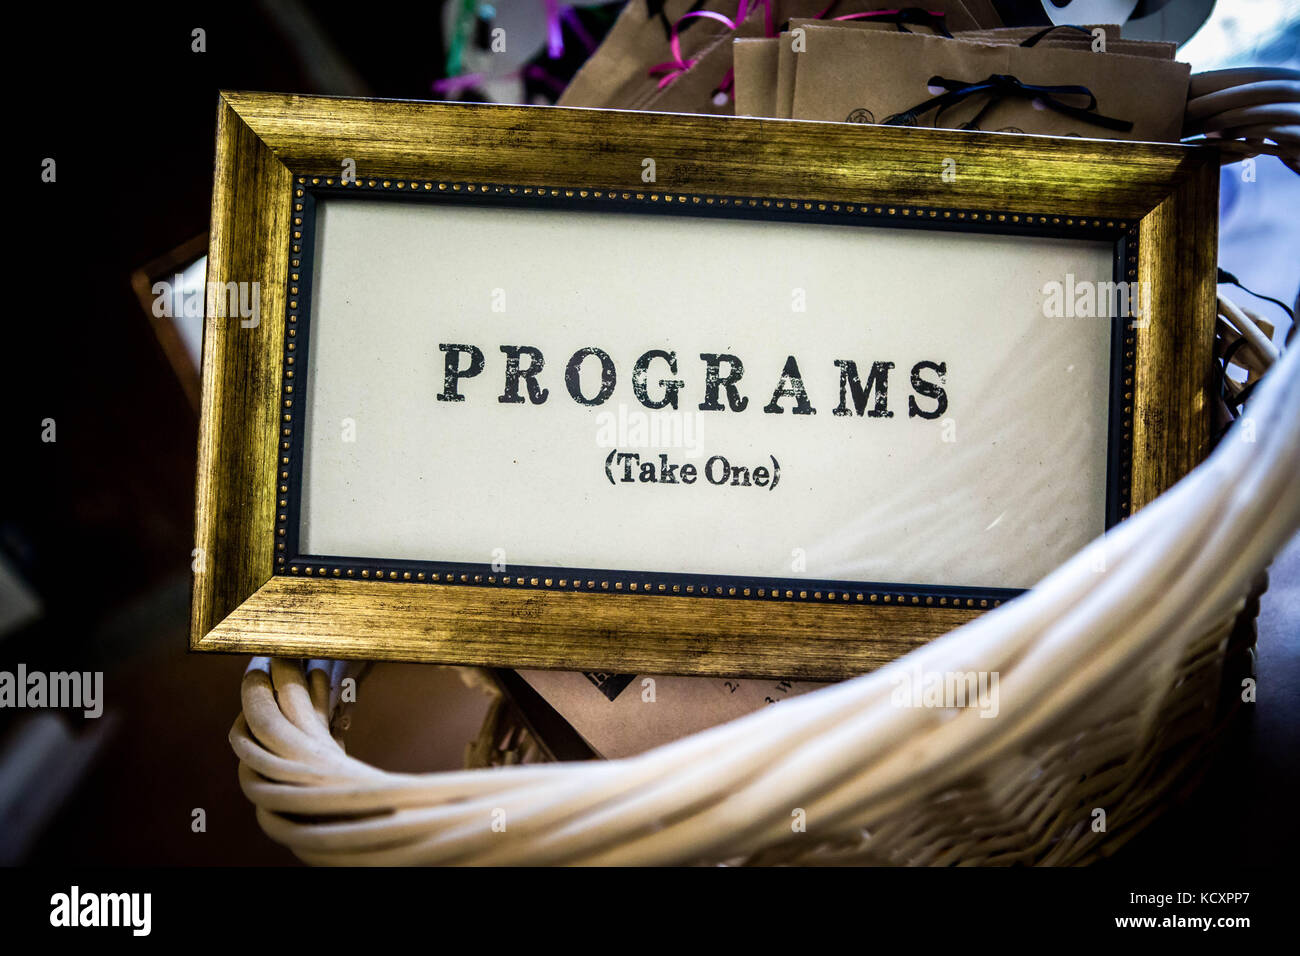 Rustic, retro, chic, or old sign used at a wedding or theater performance to hand out programs. - Stock Image